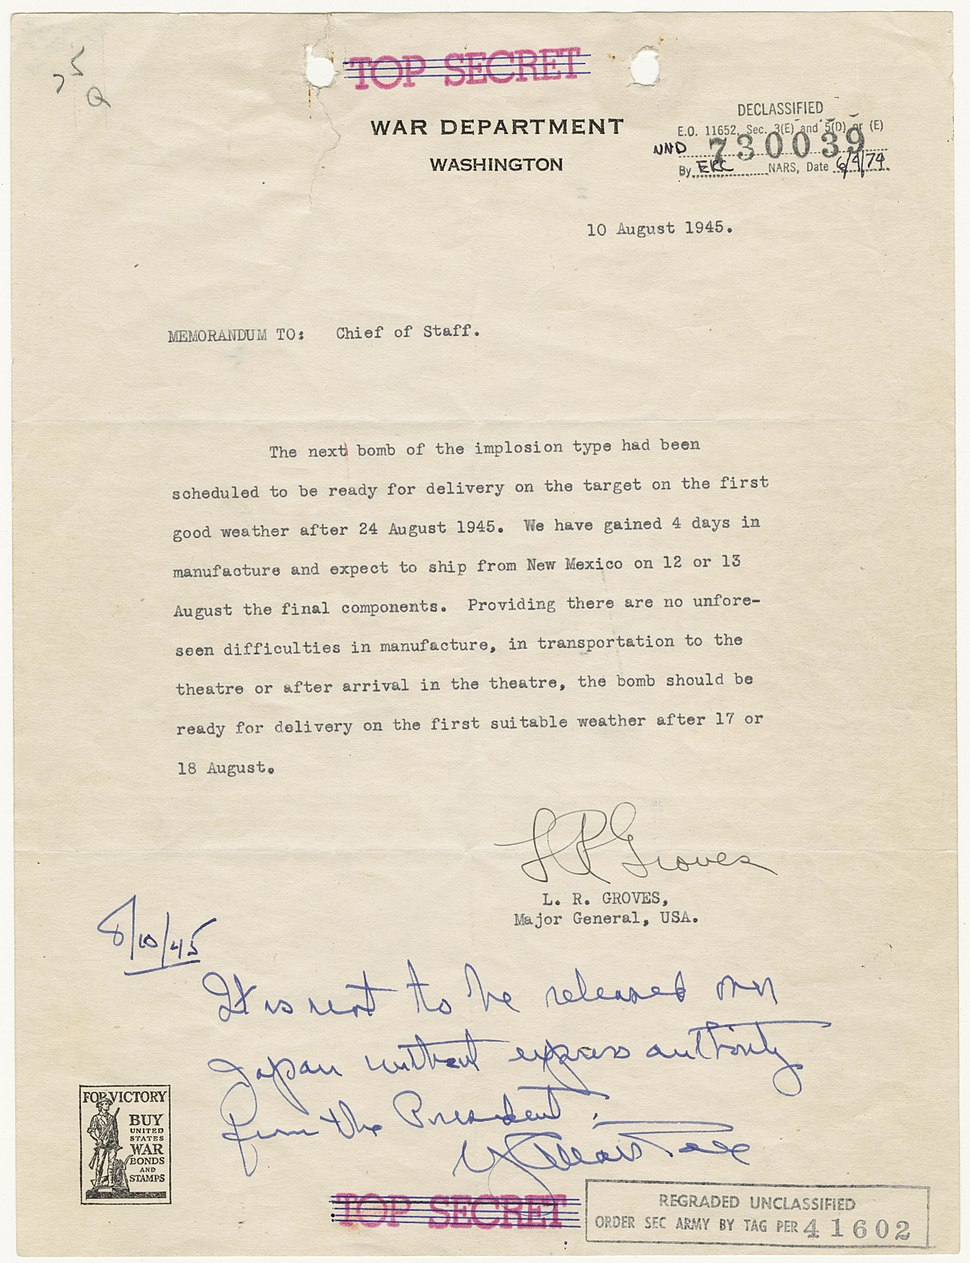 Memorandum from Major General Leslie Groves to Army Chief of Staff George Marshall